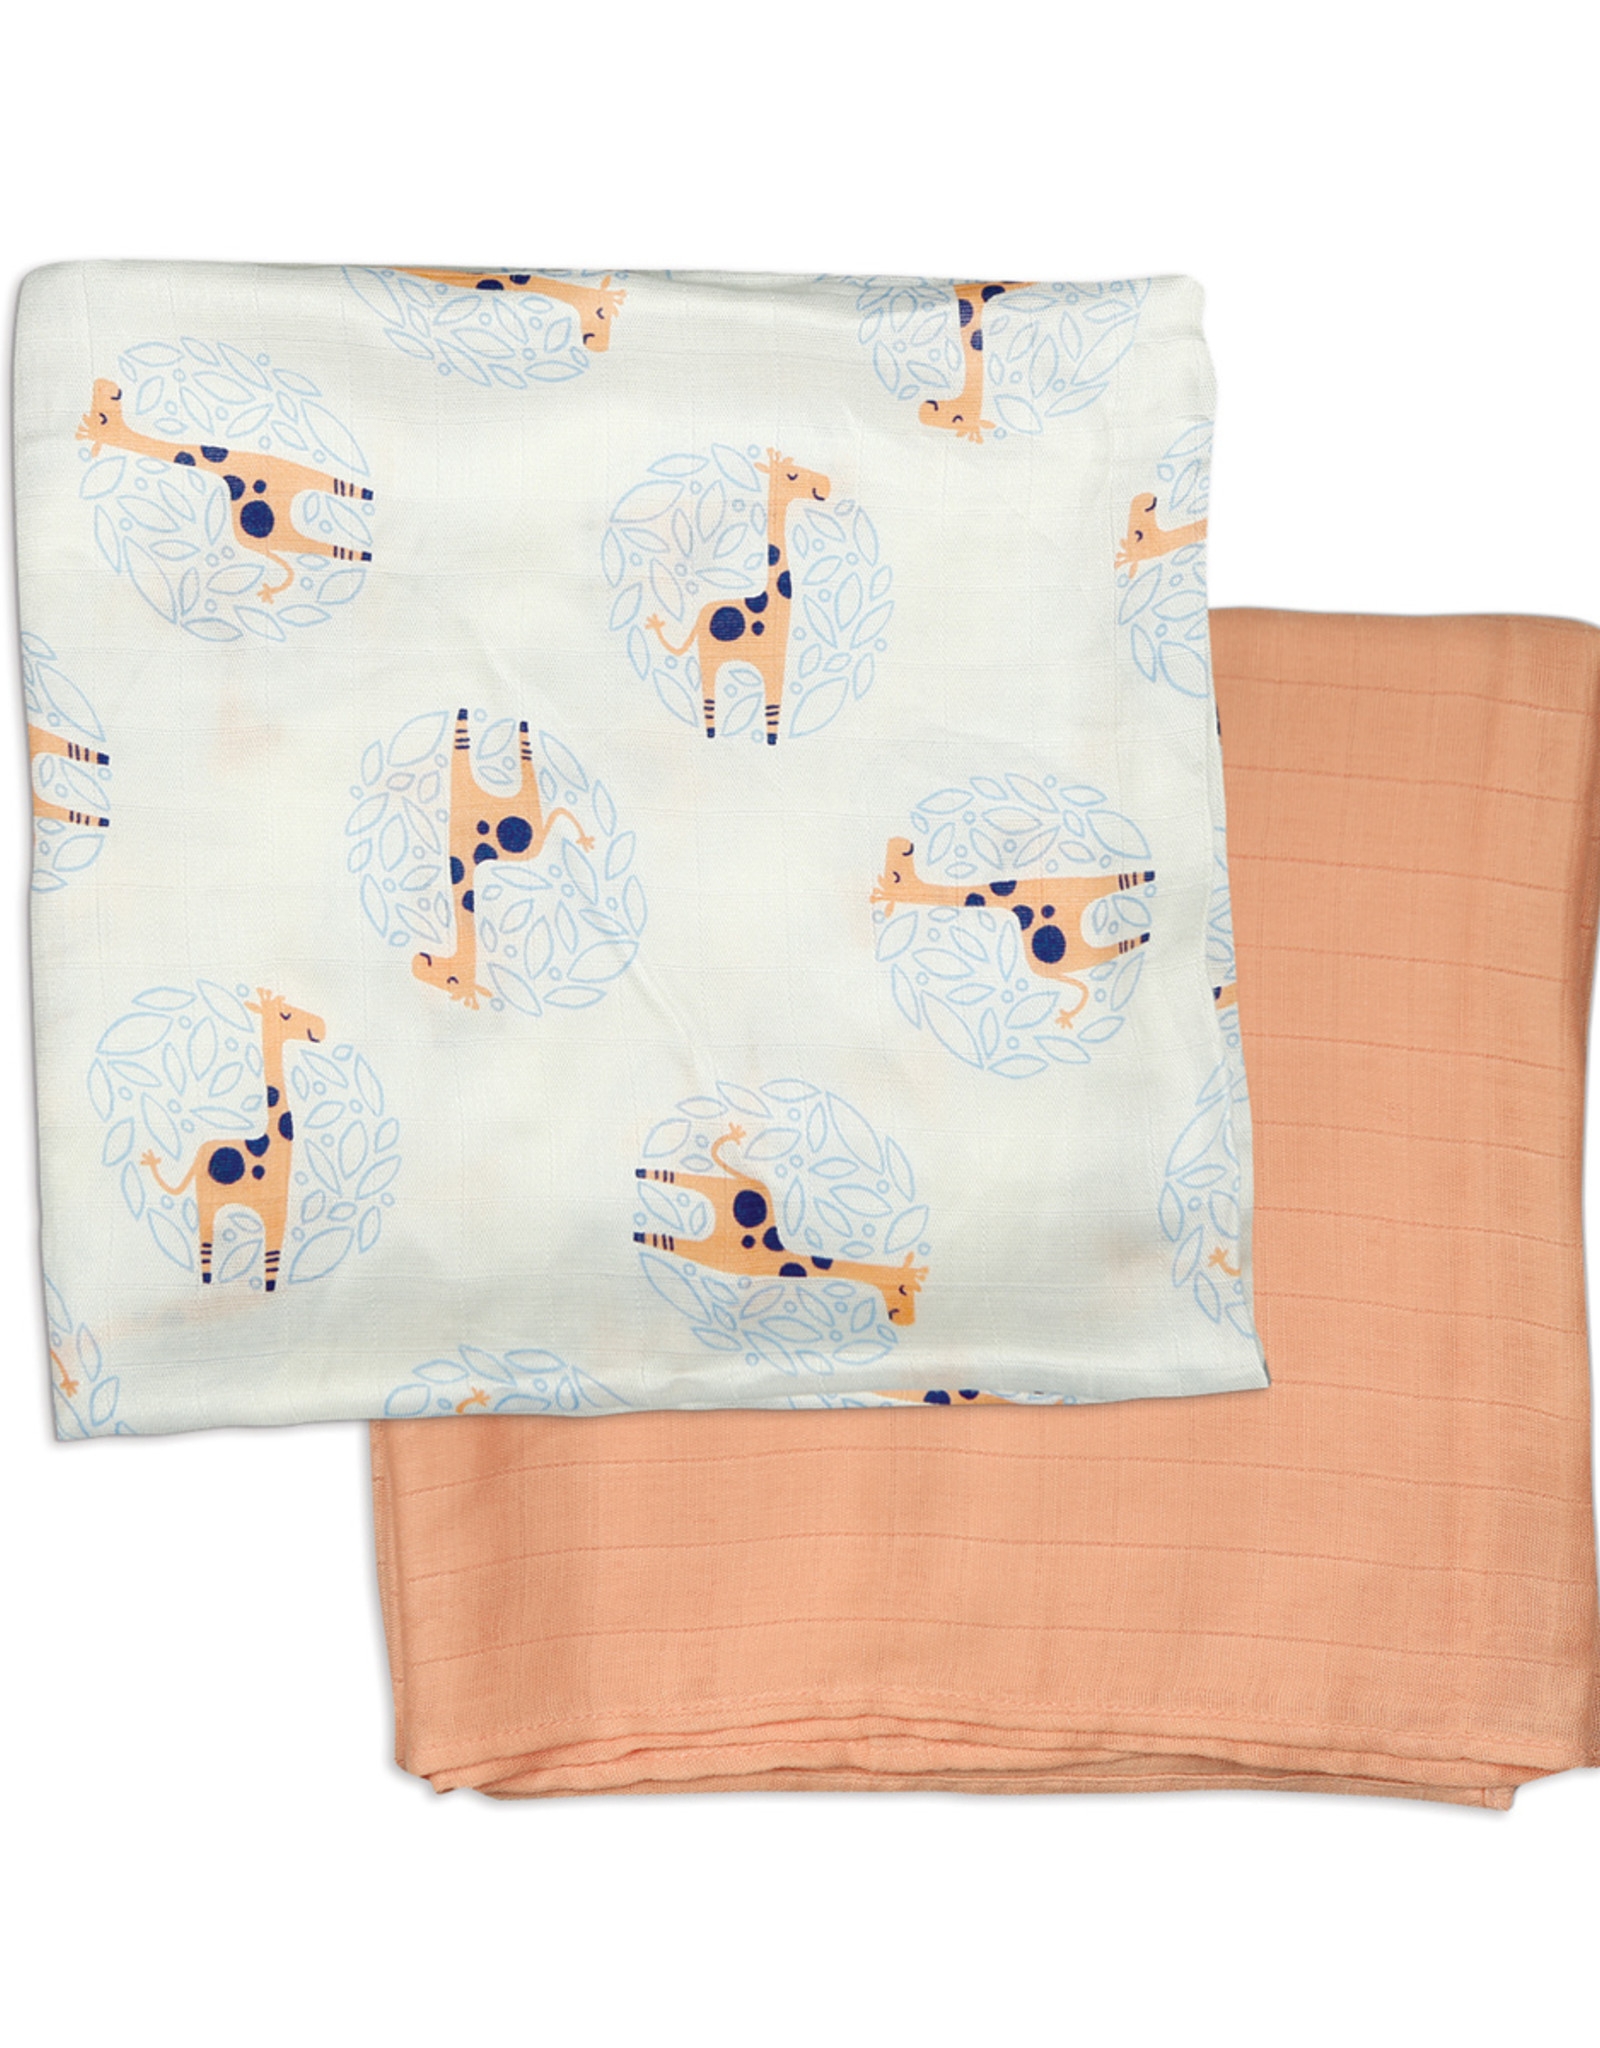 Silkberry 2Pack Swaddle Blanket